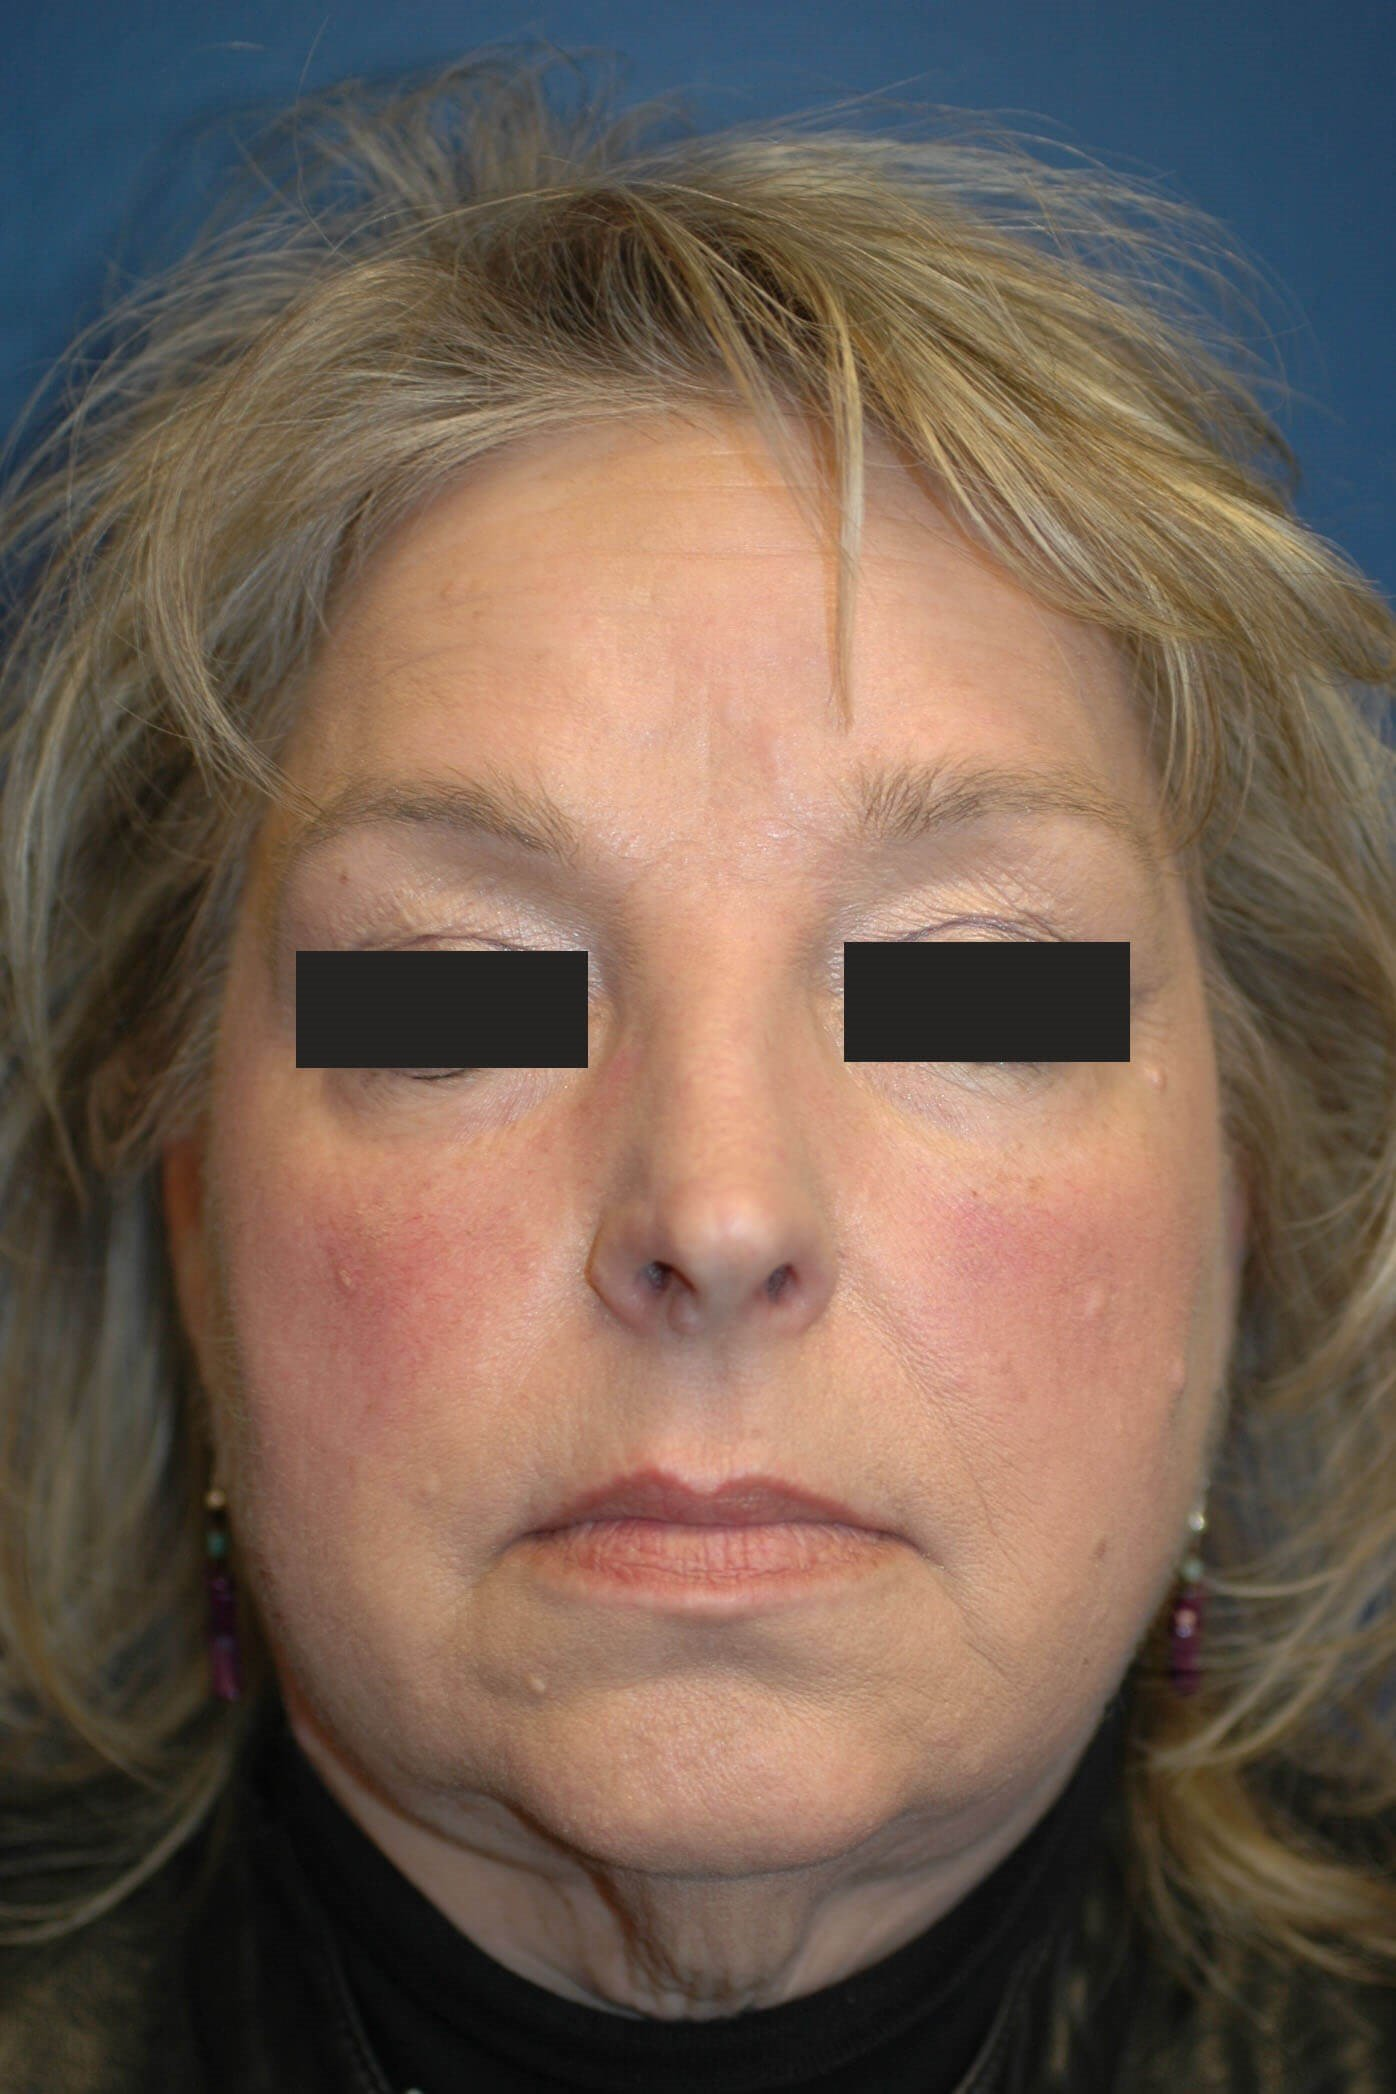 Front View, Facelift Patient Before Facelift